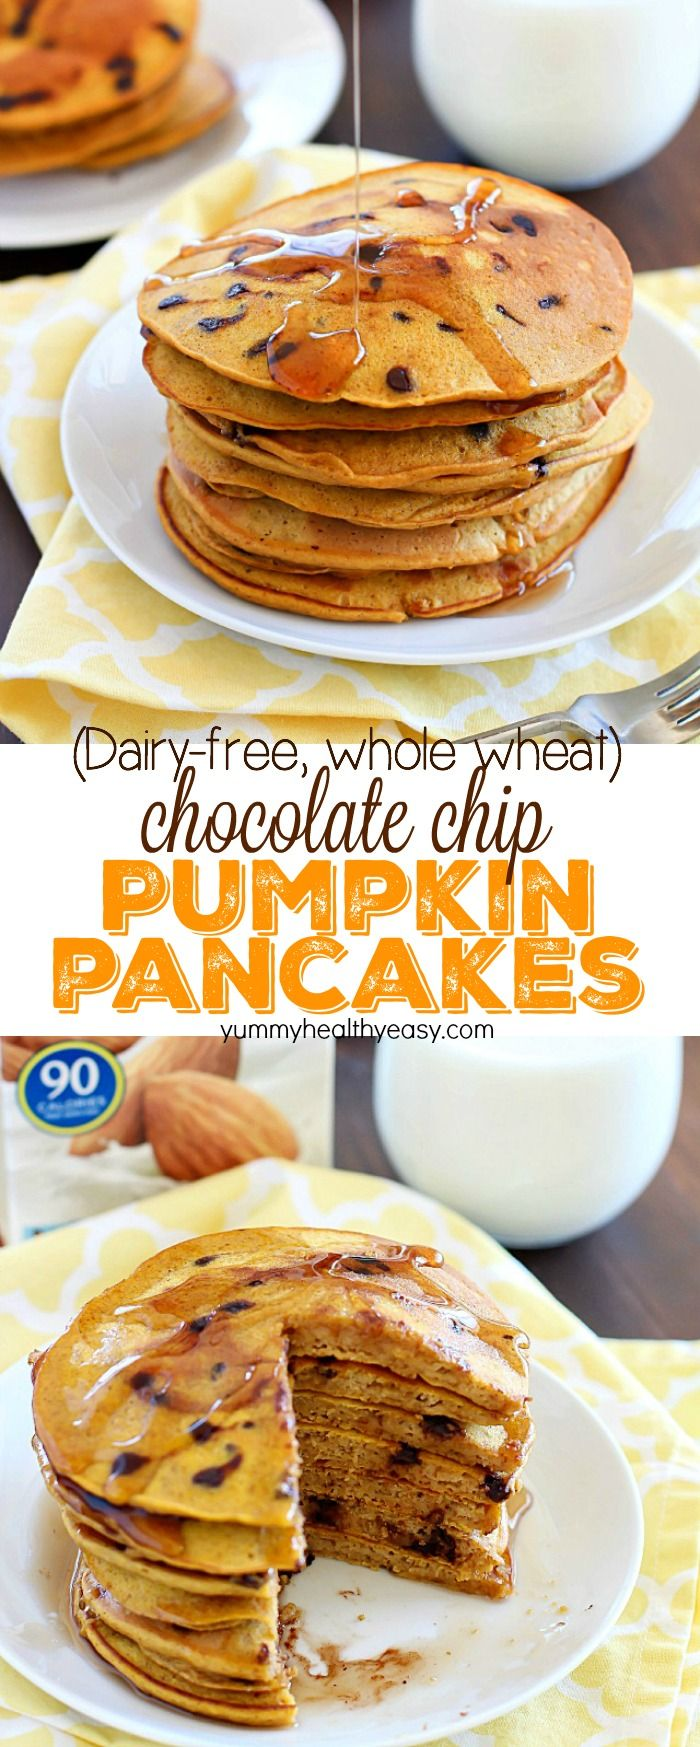 Flavorful pancakes full of pumpkin and chocolate chips that are also whole wheat and dairy-free! My family ate all of these and I had to make a second batch! AD